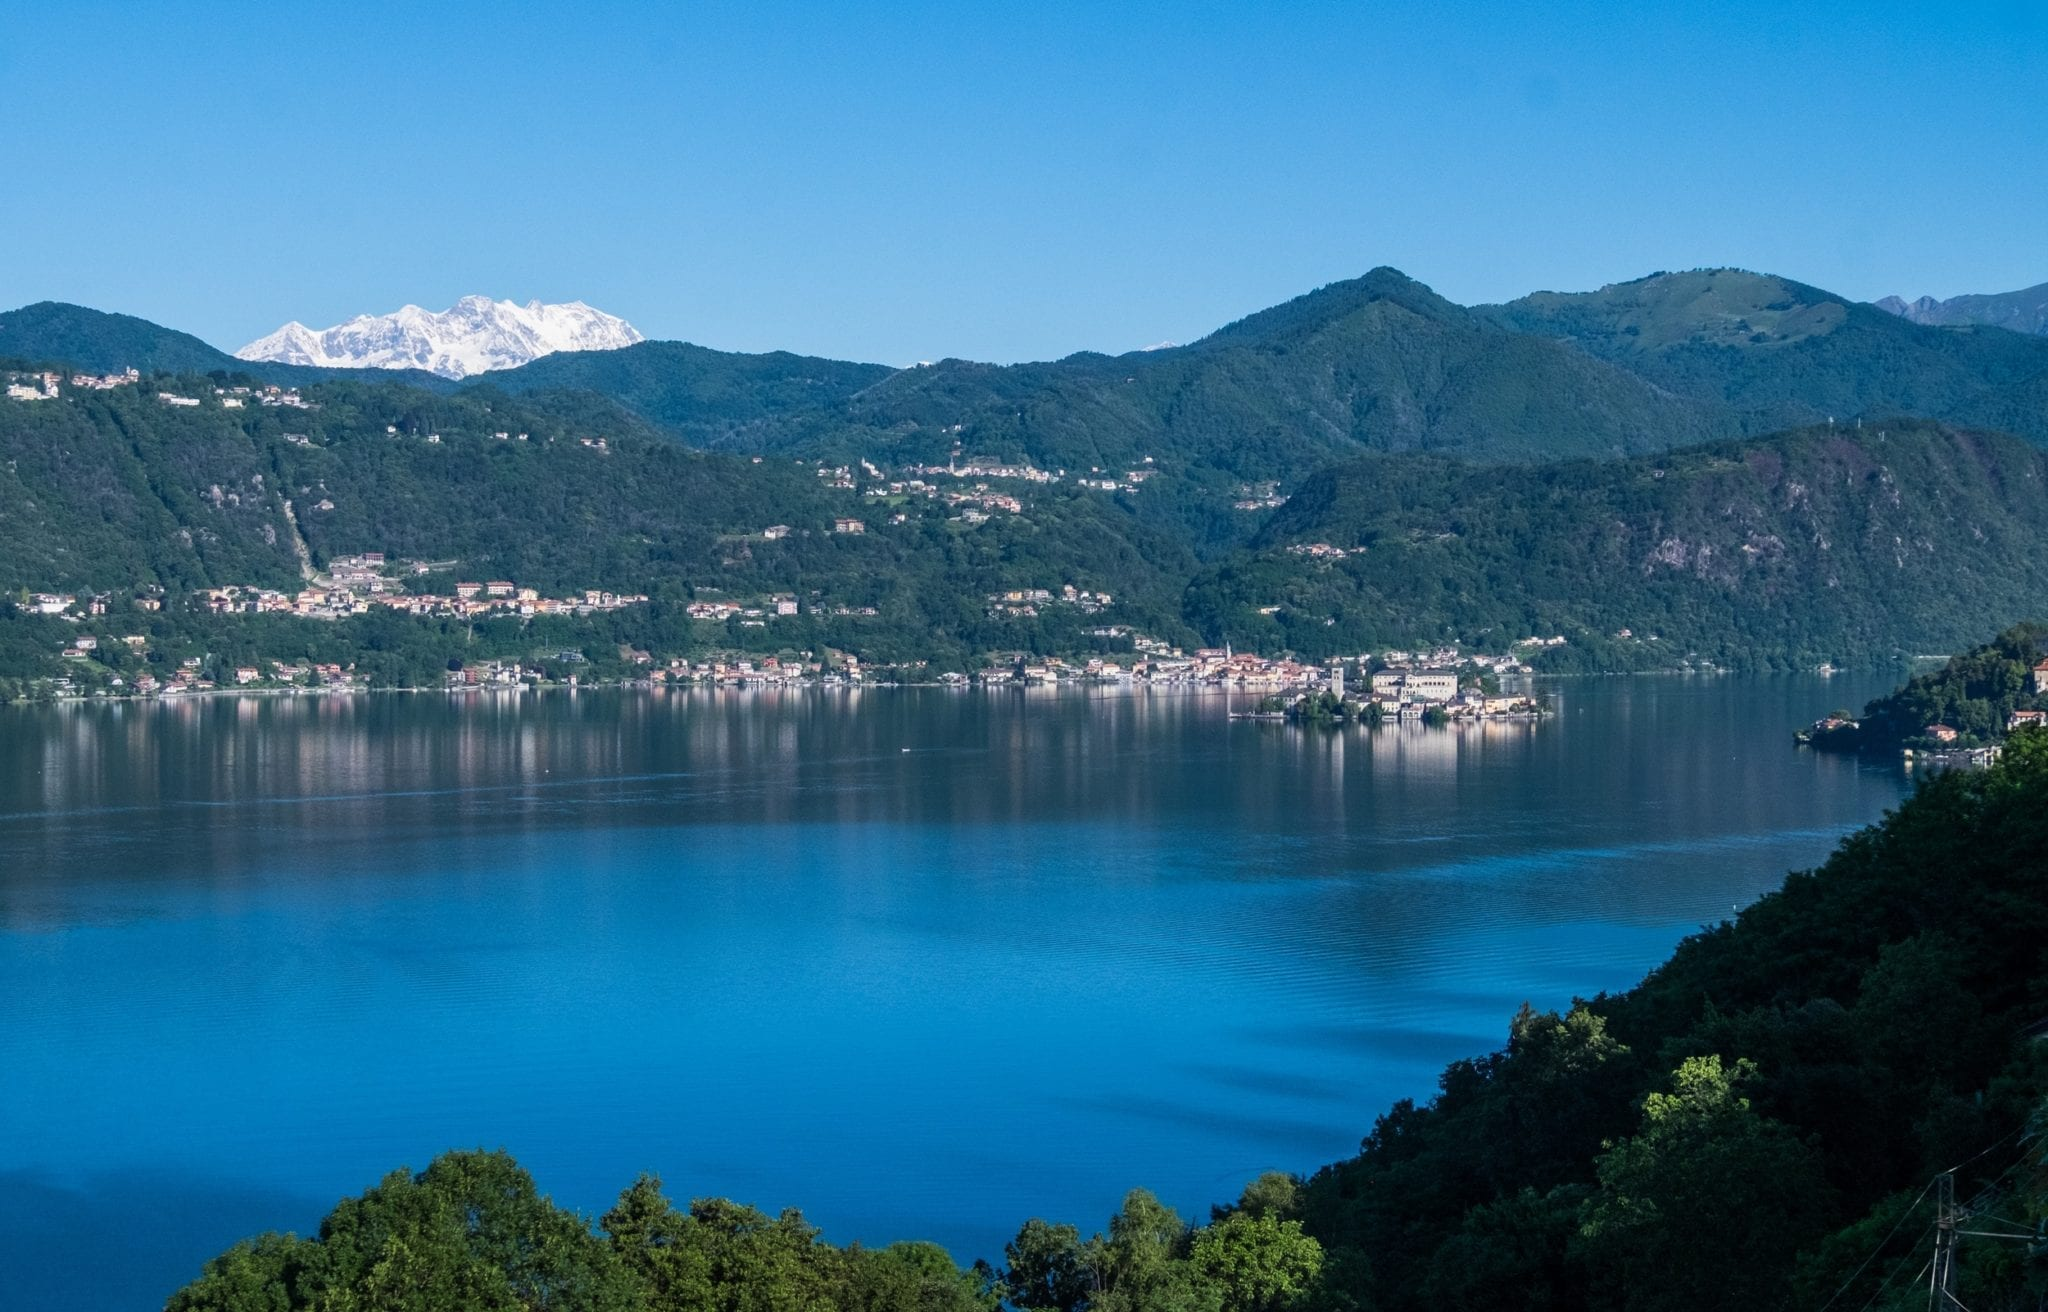 A bright blue Lake Orta with a tiny island in the lake, green mountains on the other side, and a glacier-covered white mountains in the distance,  all underneath a bright blue sky.